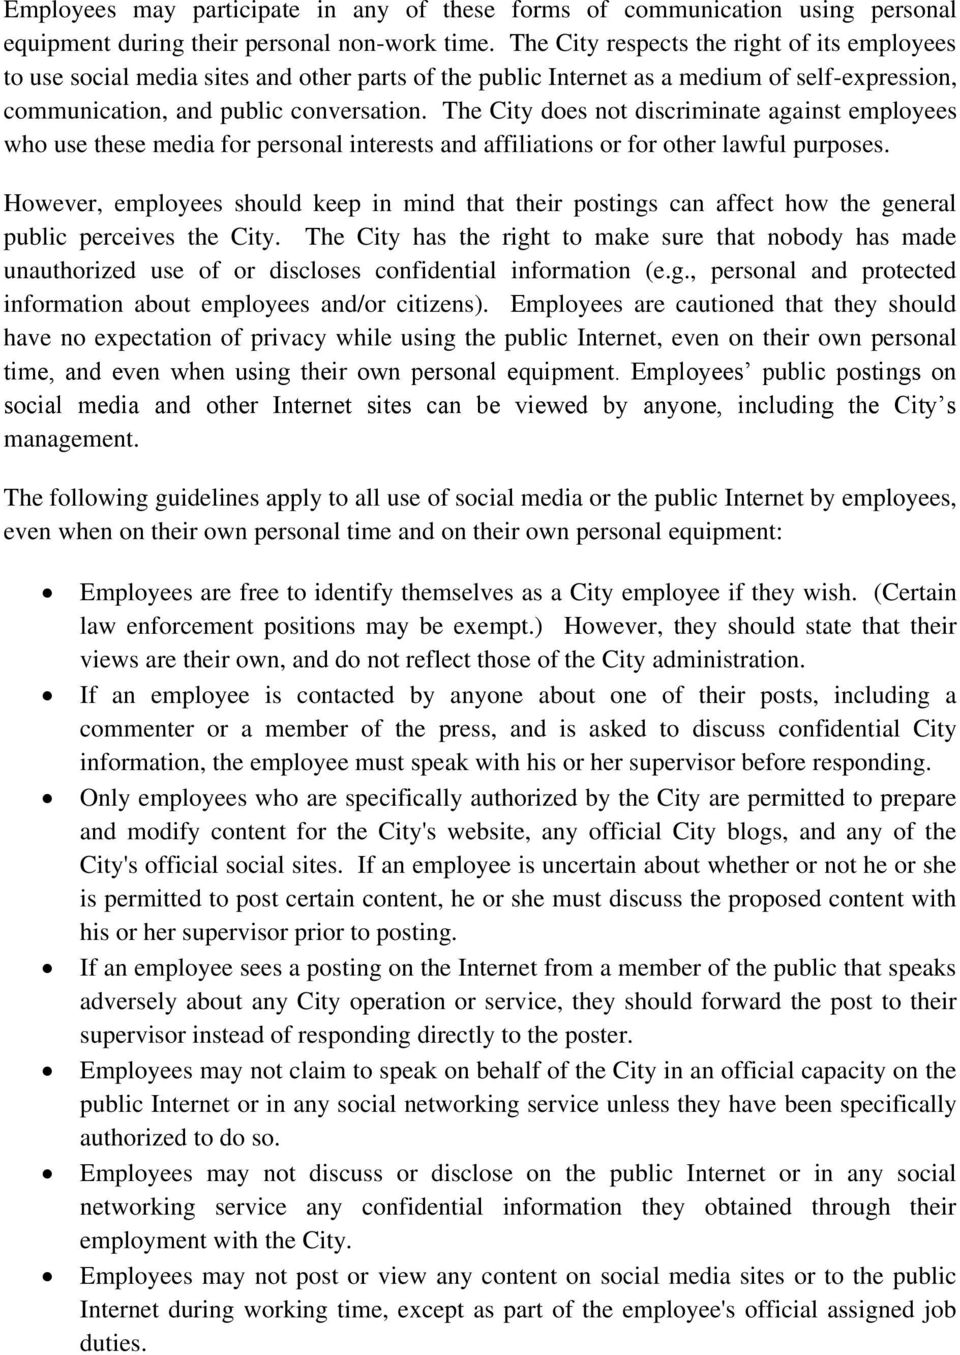 The City does not discriminate against employees who use these media for personal interests and affiliations or for other lawful purposes.